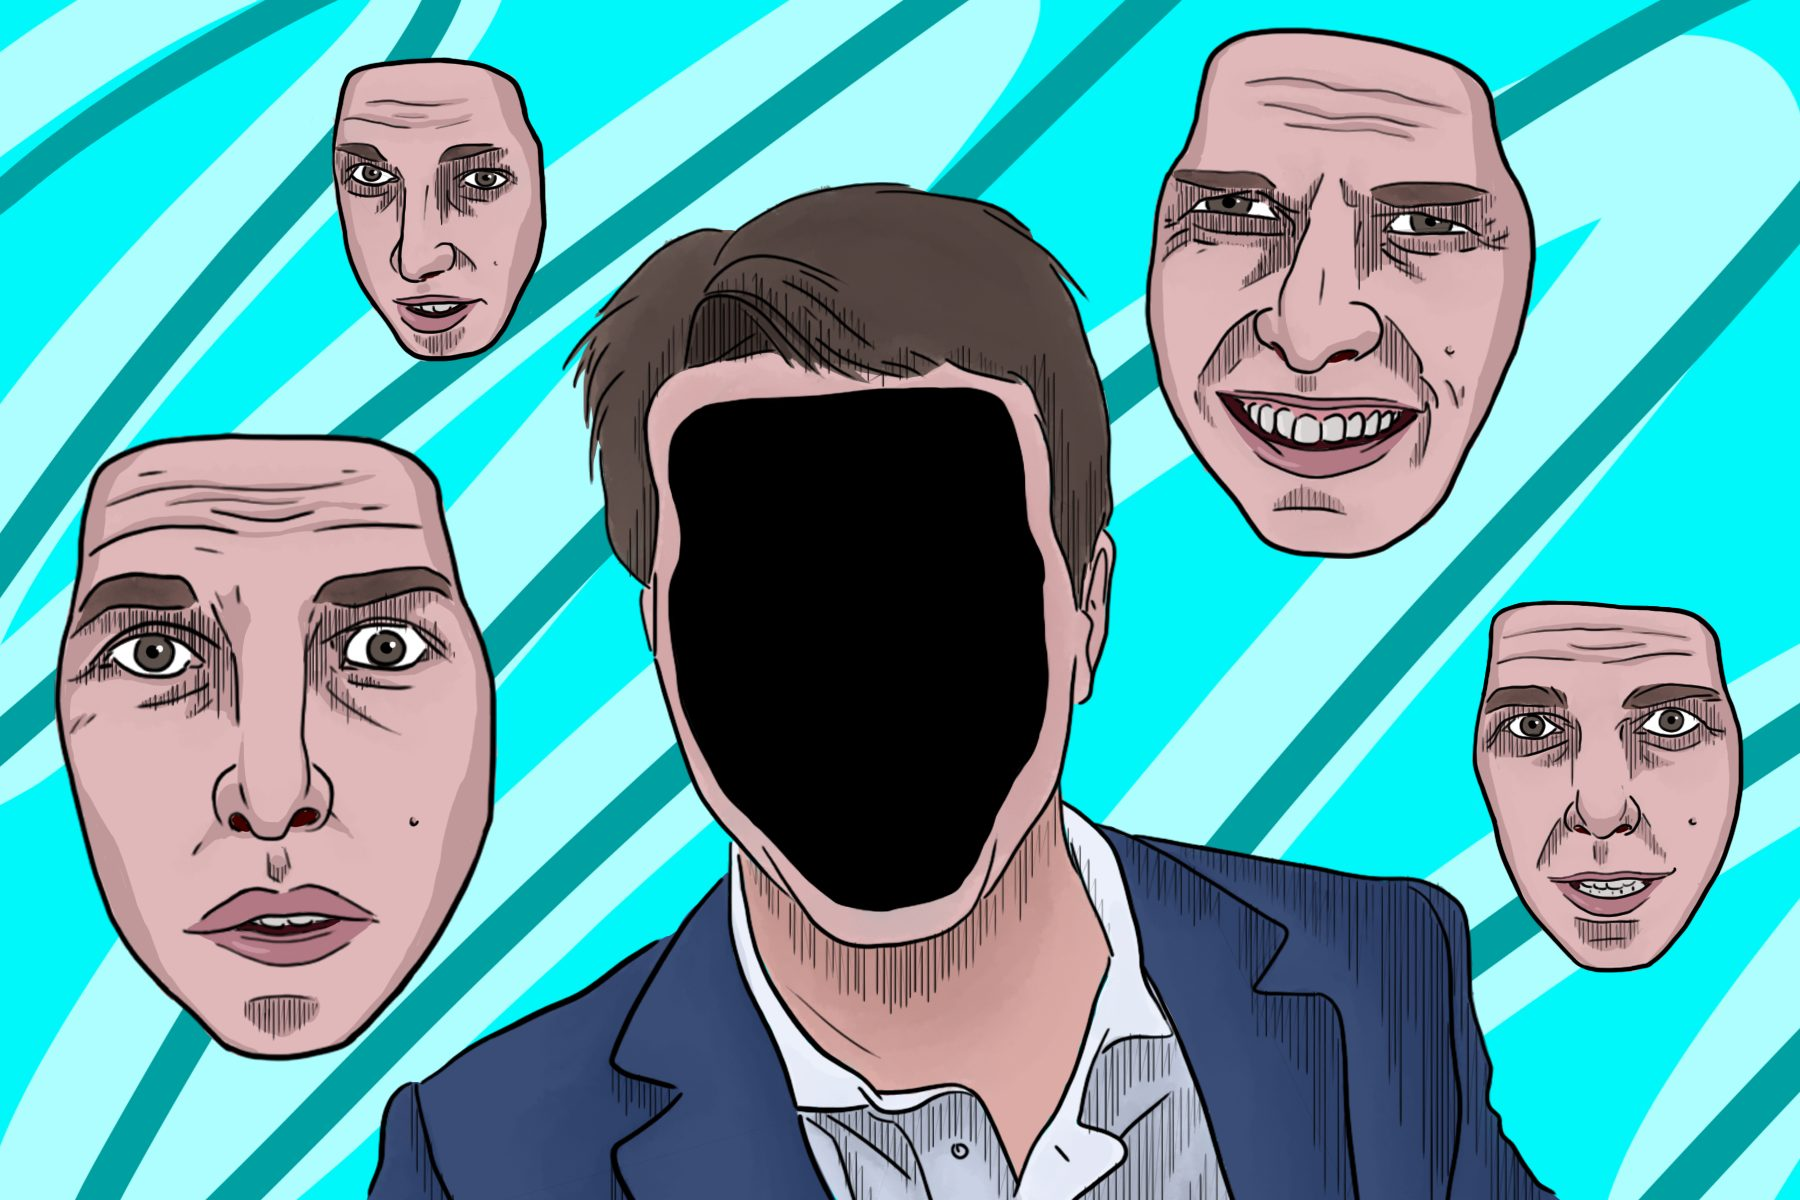 In an article about deepfakes, a person without a face surrounded by four faces of Tom Cruise